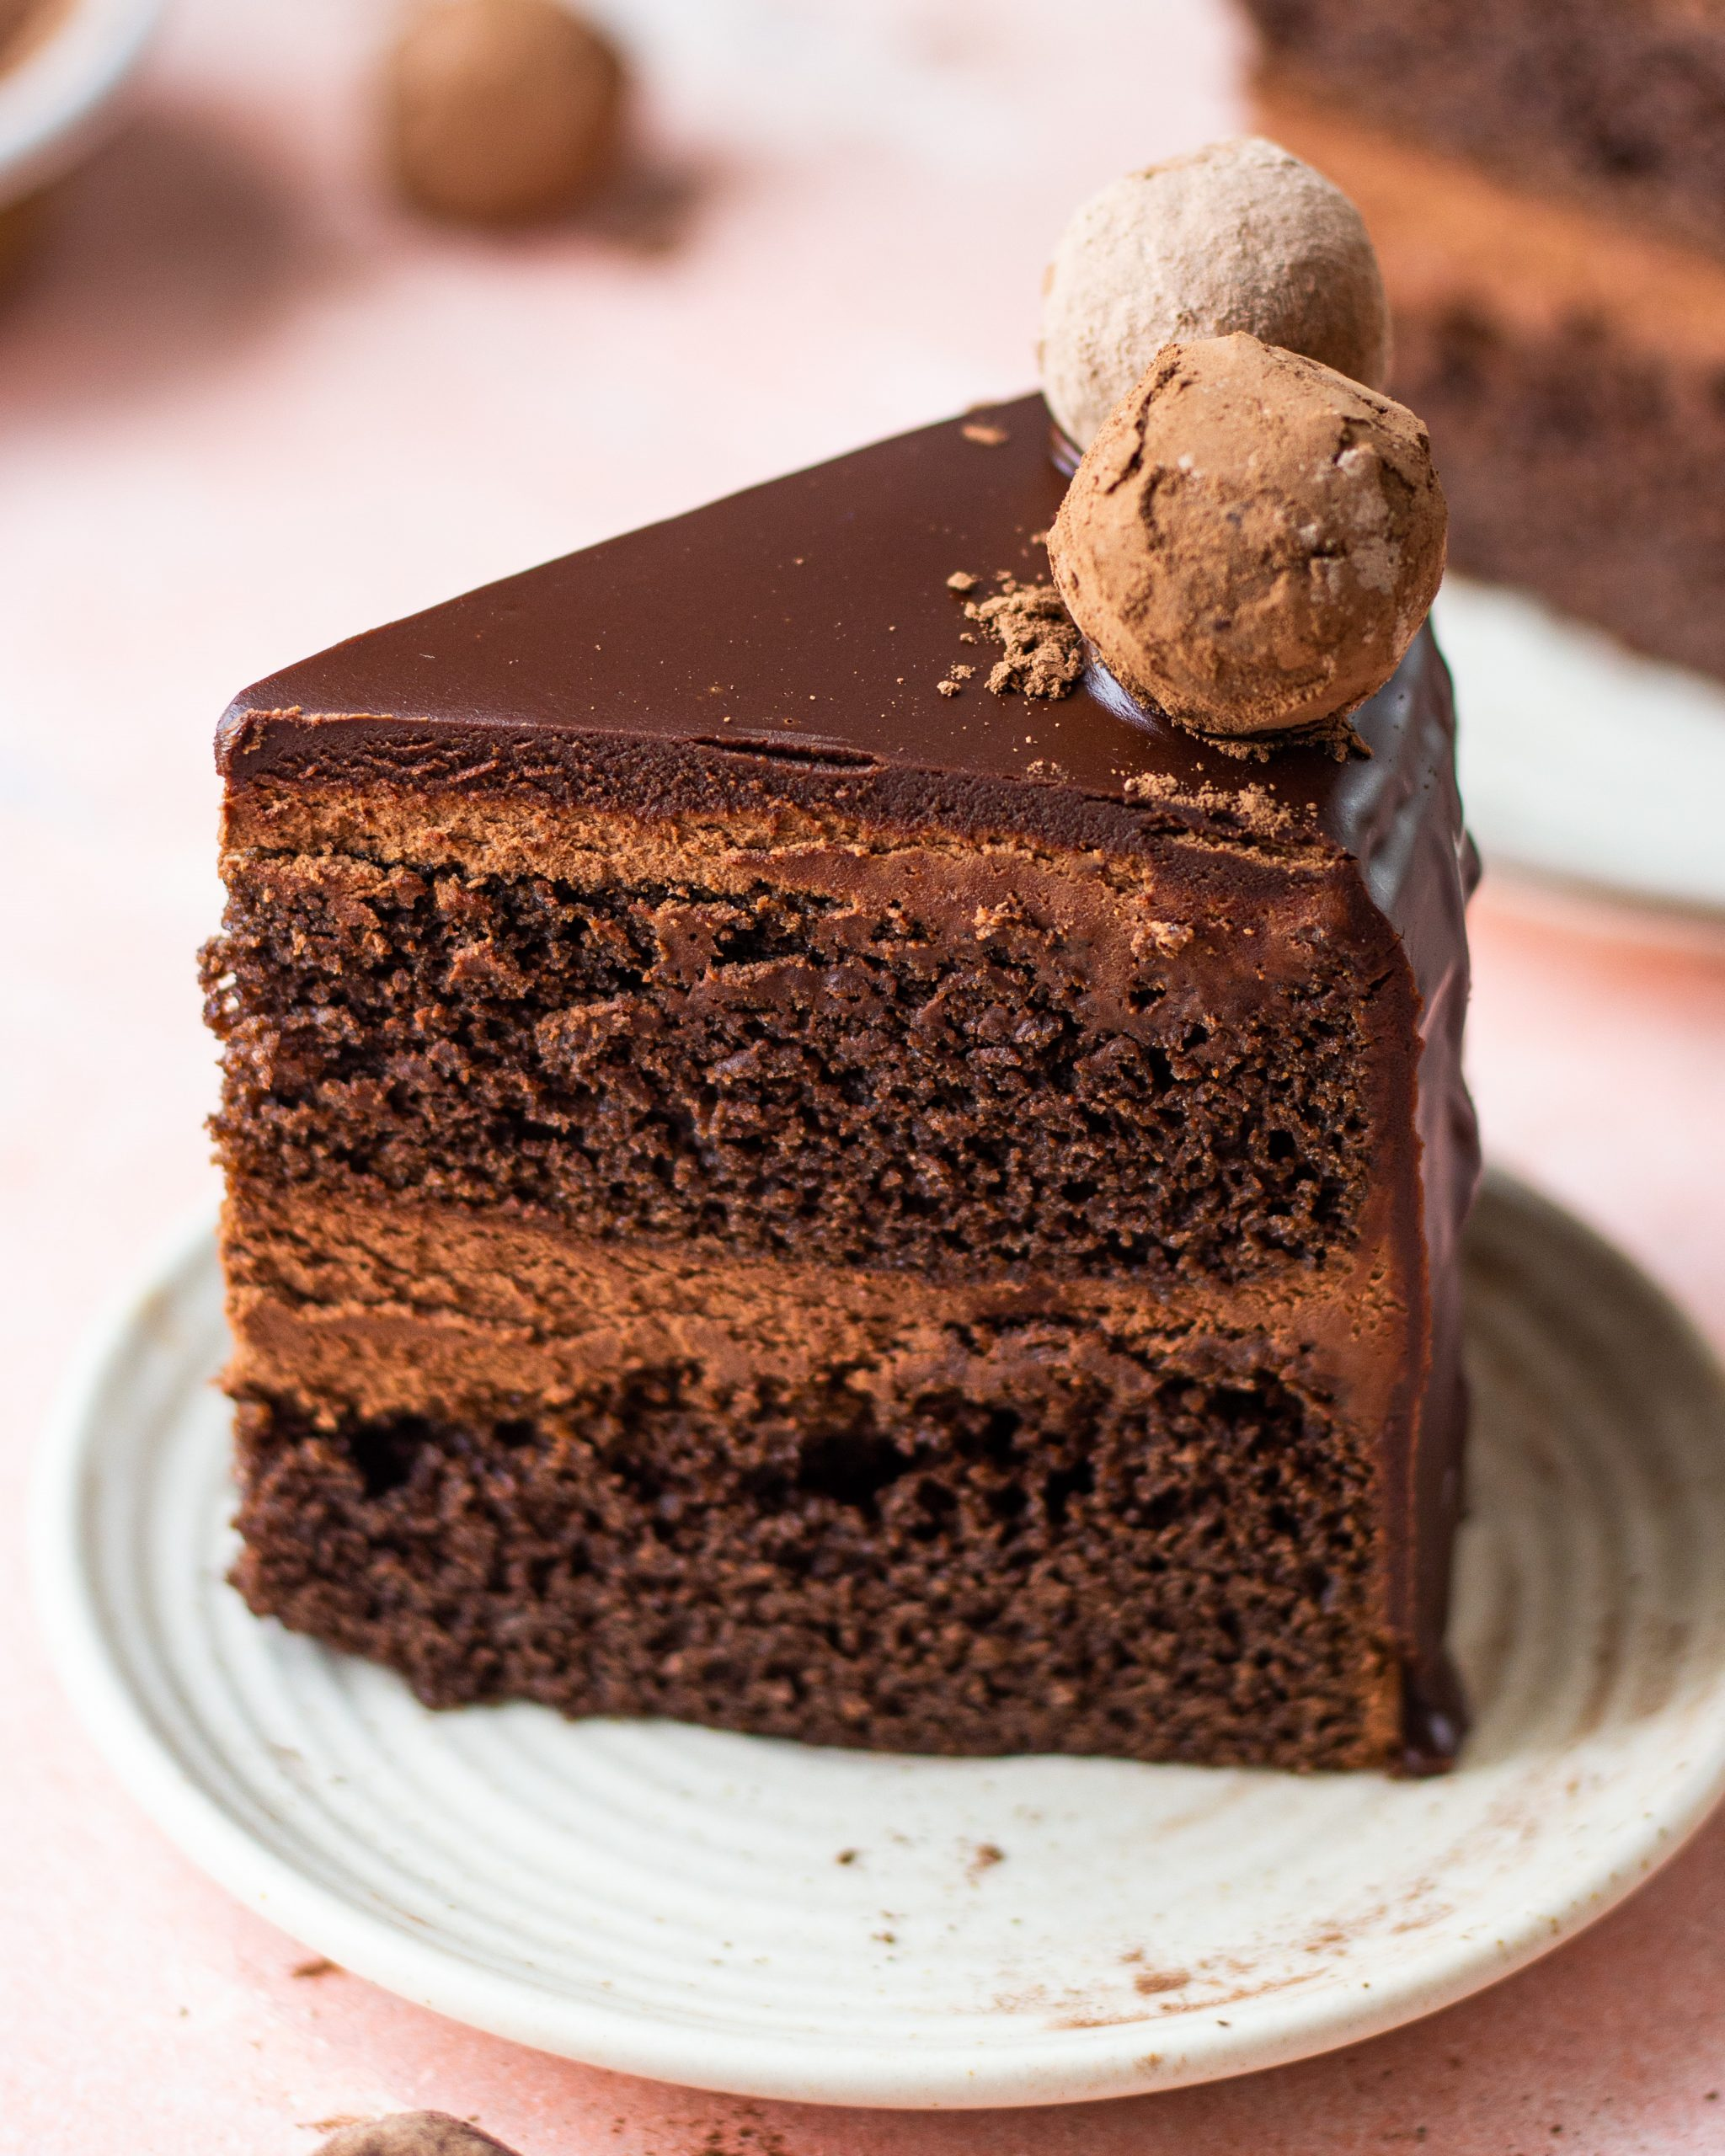 homemade chocolate truffle cake